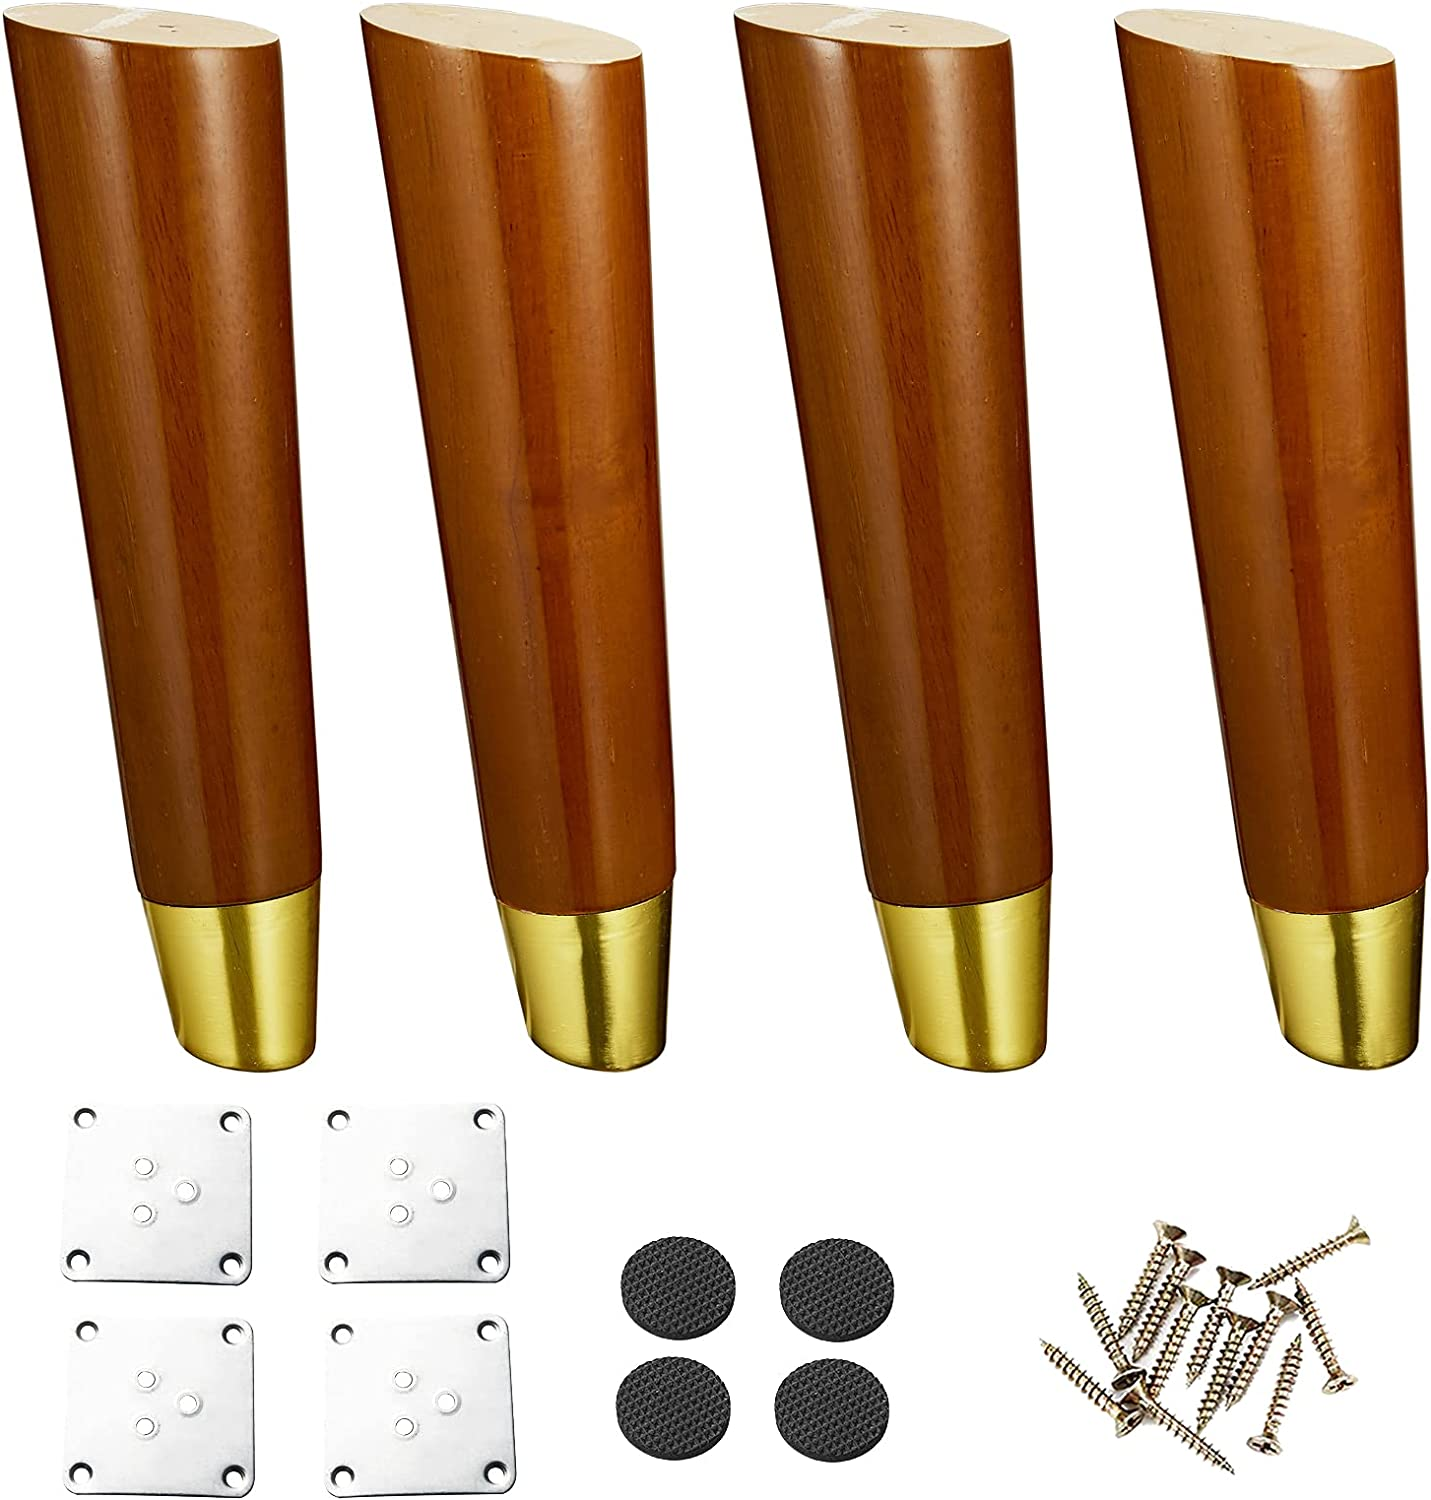 Wood Indianapolis Mall Furniture Legs 8 inch of Round 4 Pack Couch Baltimore Mall